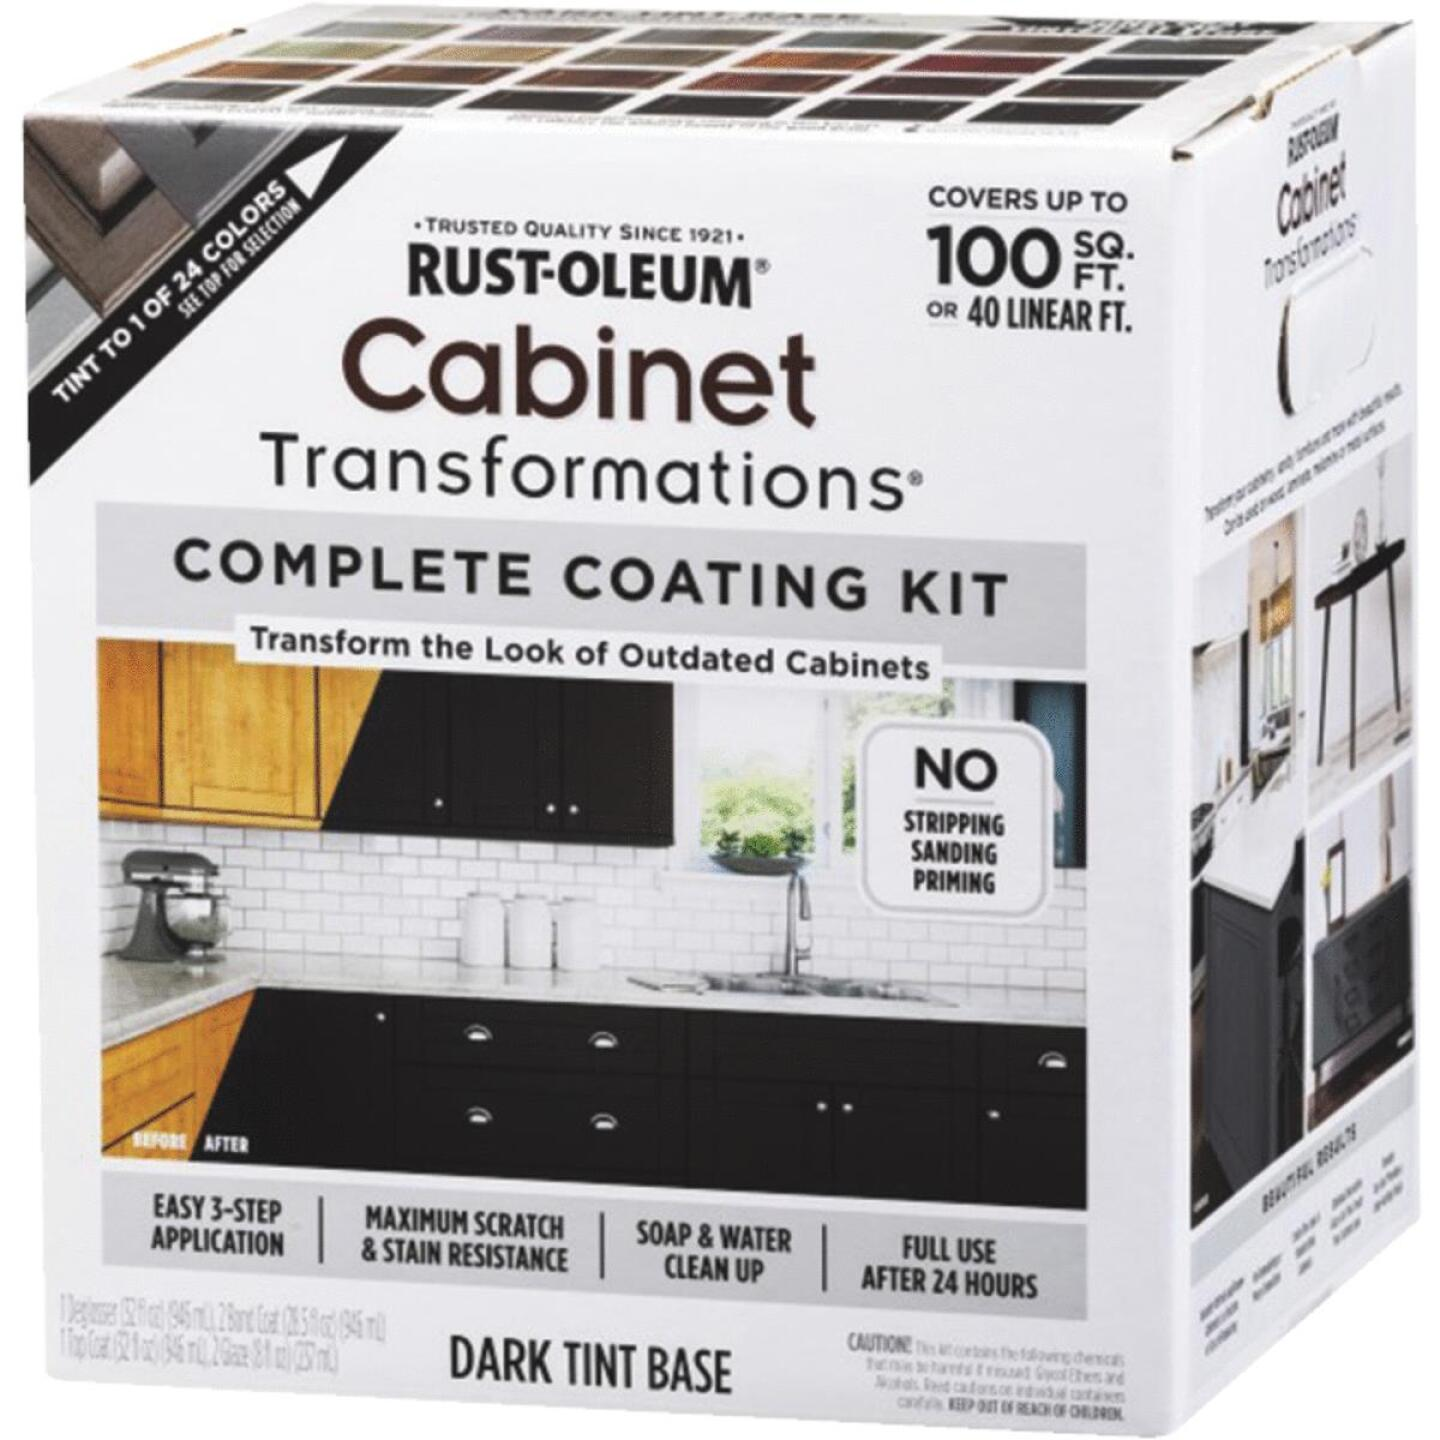 Rust-Oleum Transformations Dark Tint Base Kitchen Cabinet Coating Kit Image 1